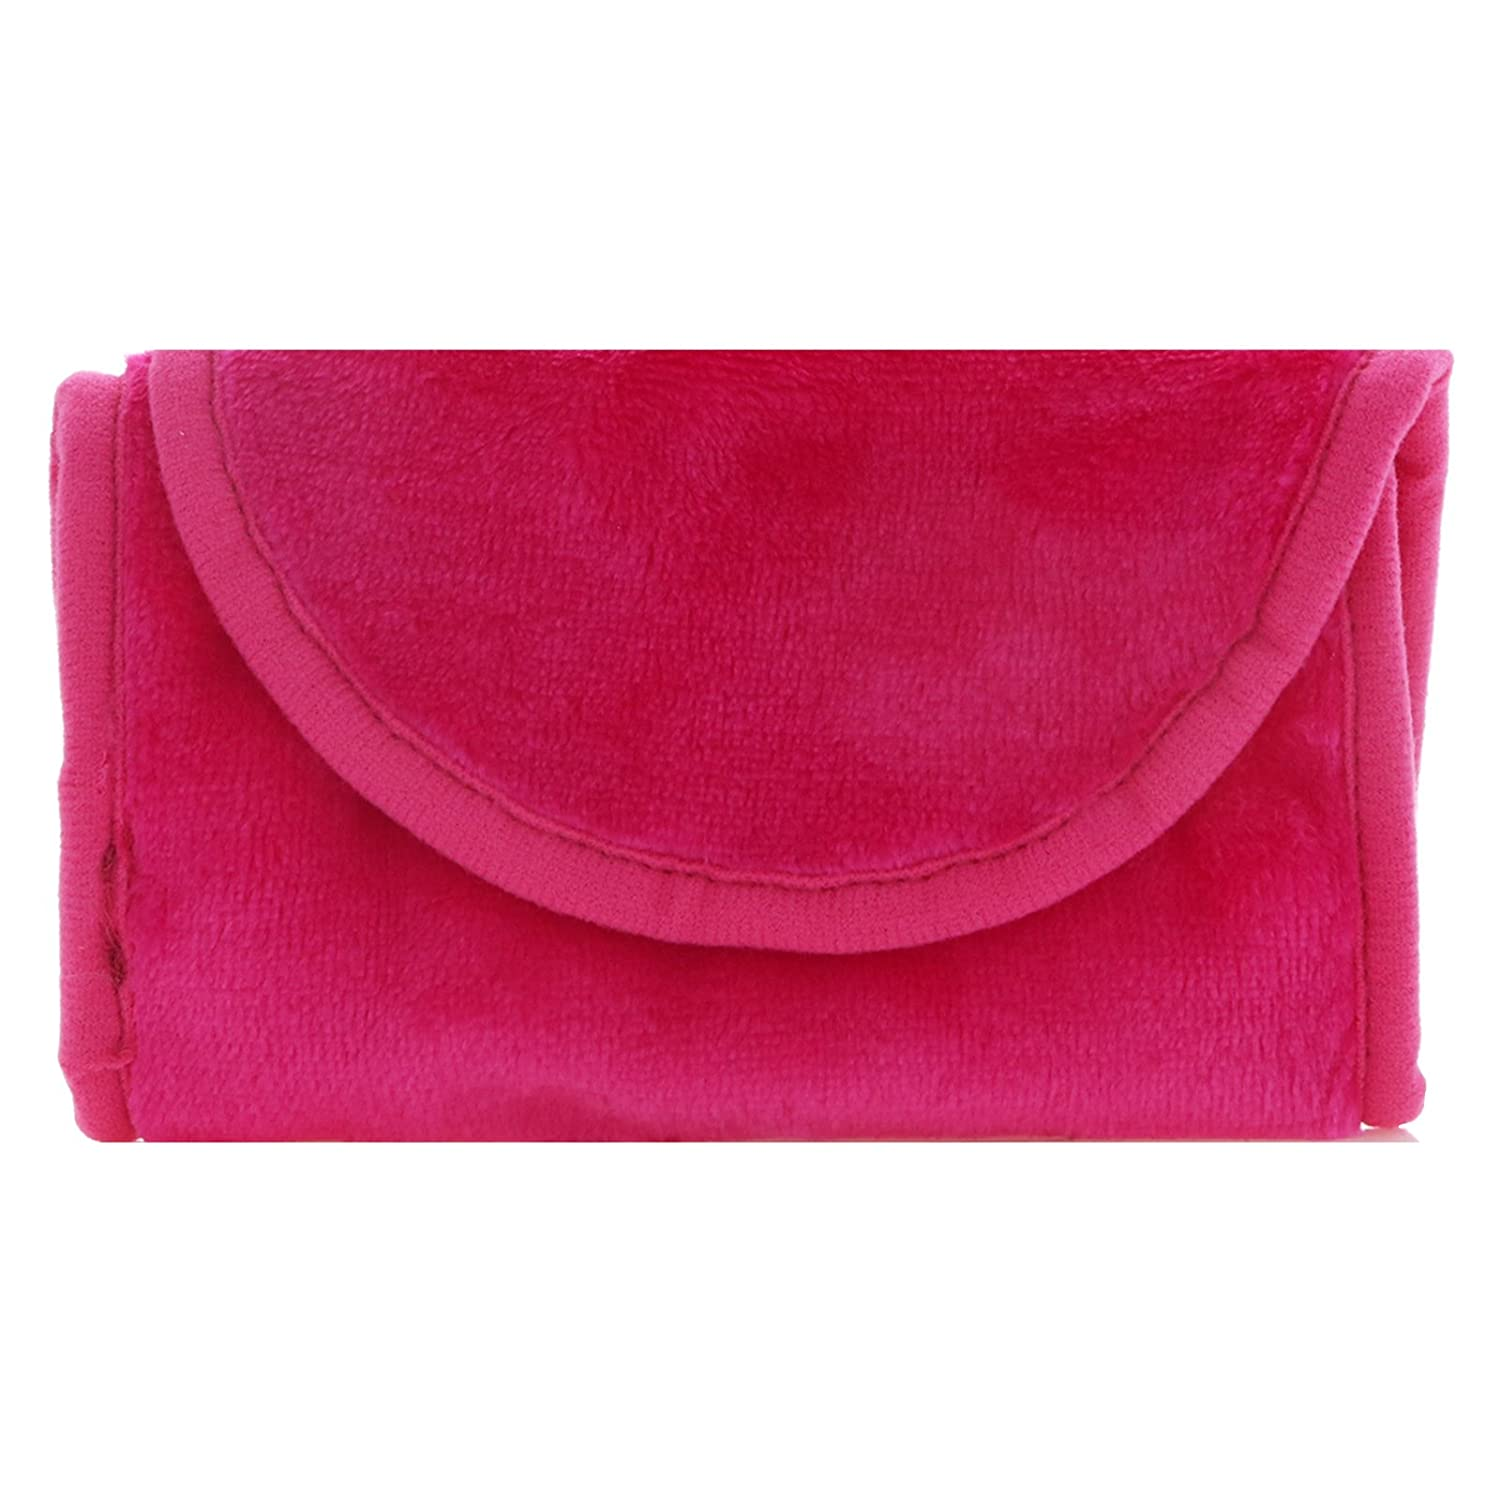 Amazon.com: AfterSpa Magic Make Up Remover Reusable Cloth Pink 1 Cloth: Beauty